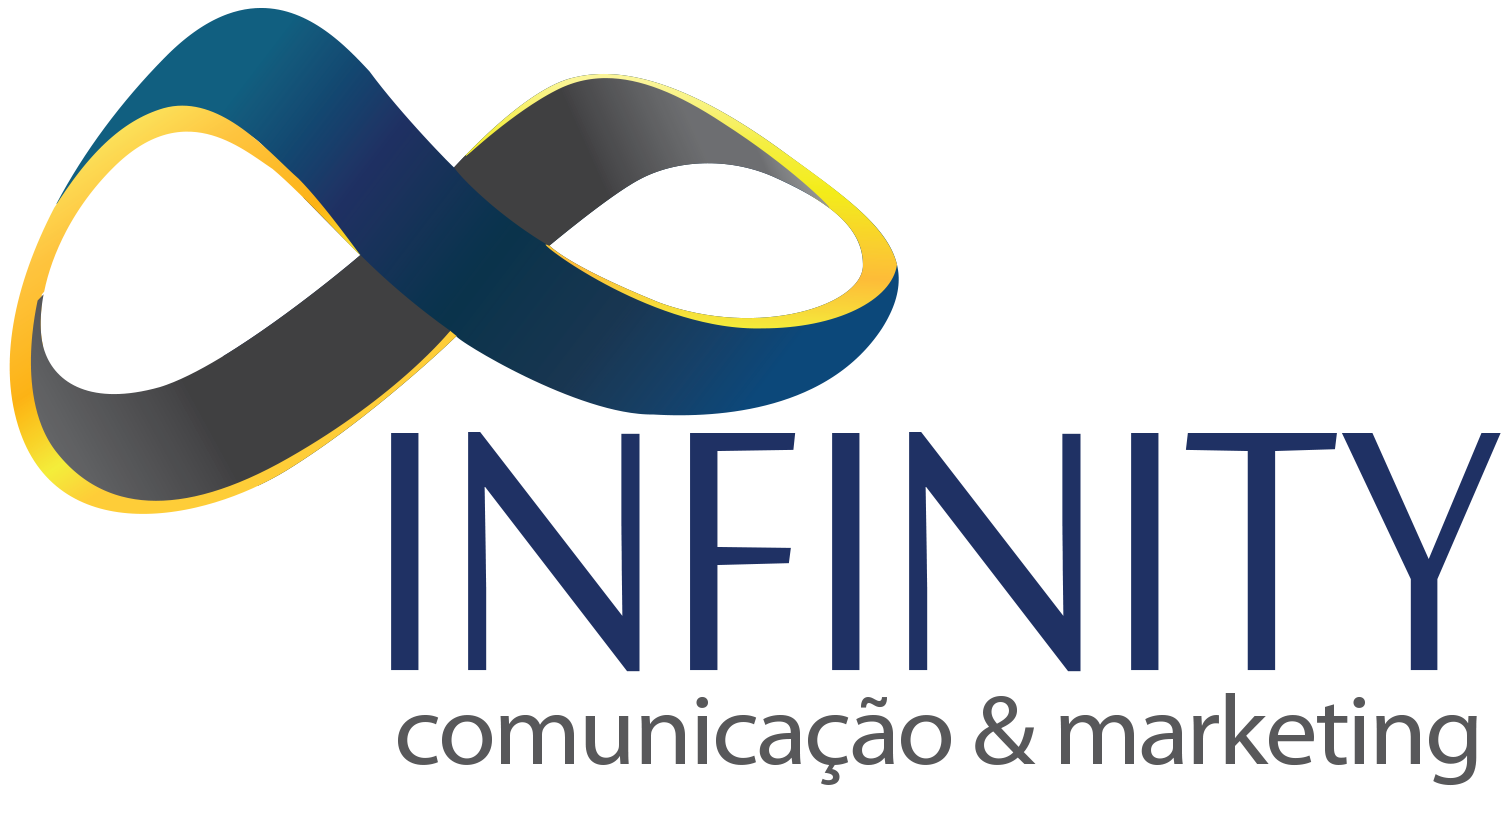 Infinity Comunicação & Marketing